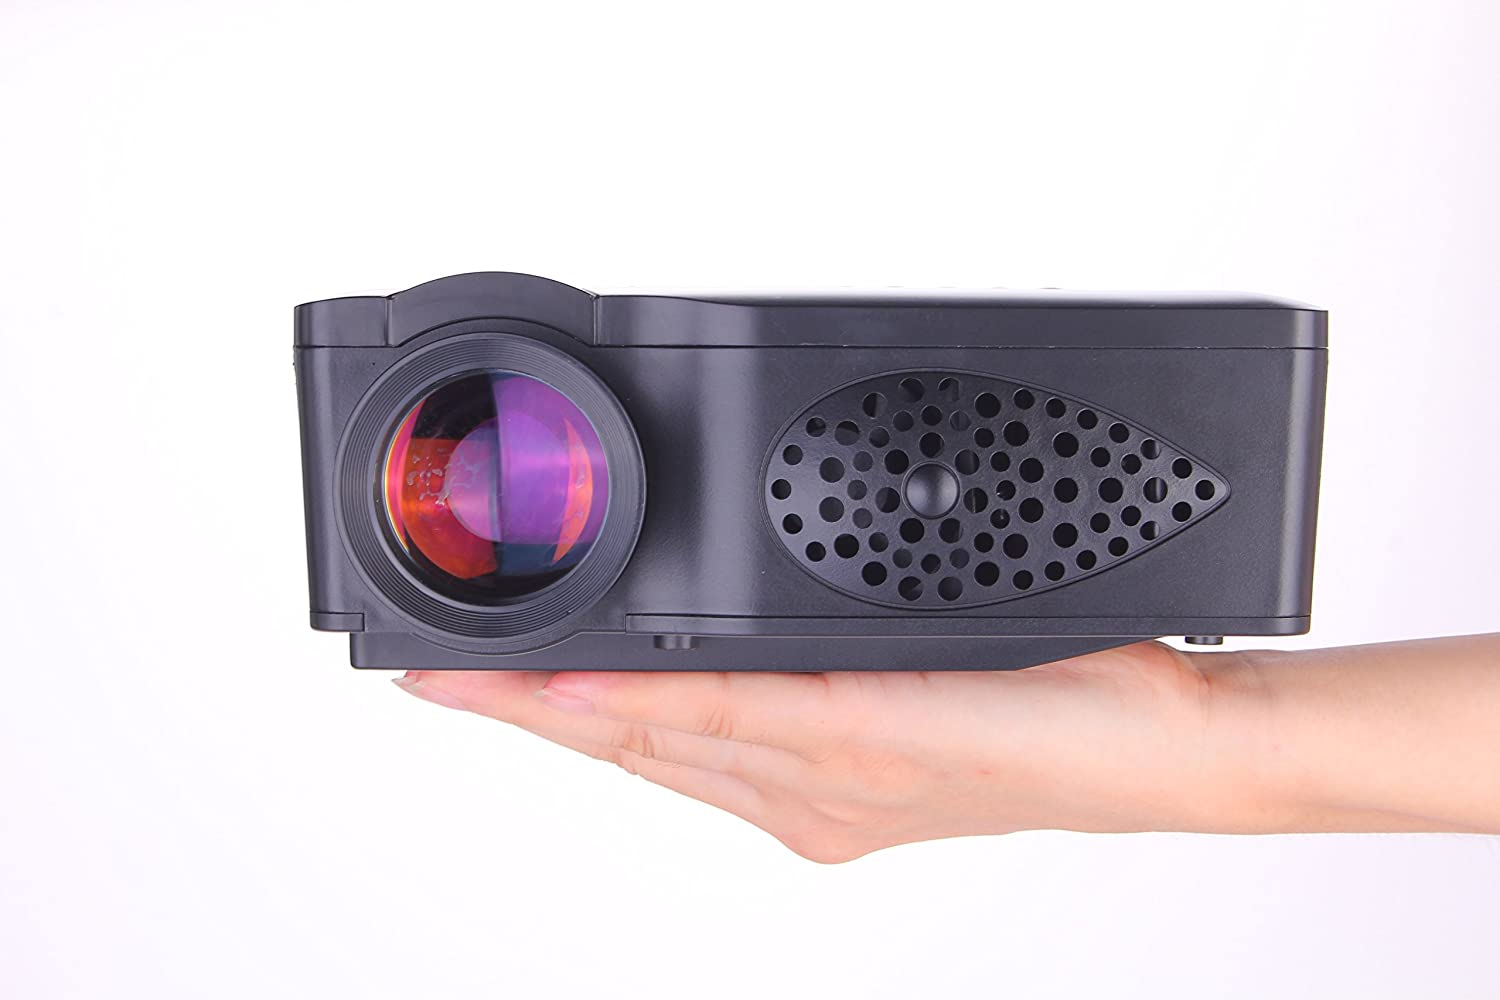 Projector portable led wireless home hd theater pc laptop for Compact projector for laptop